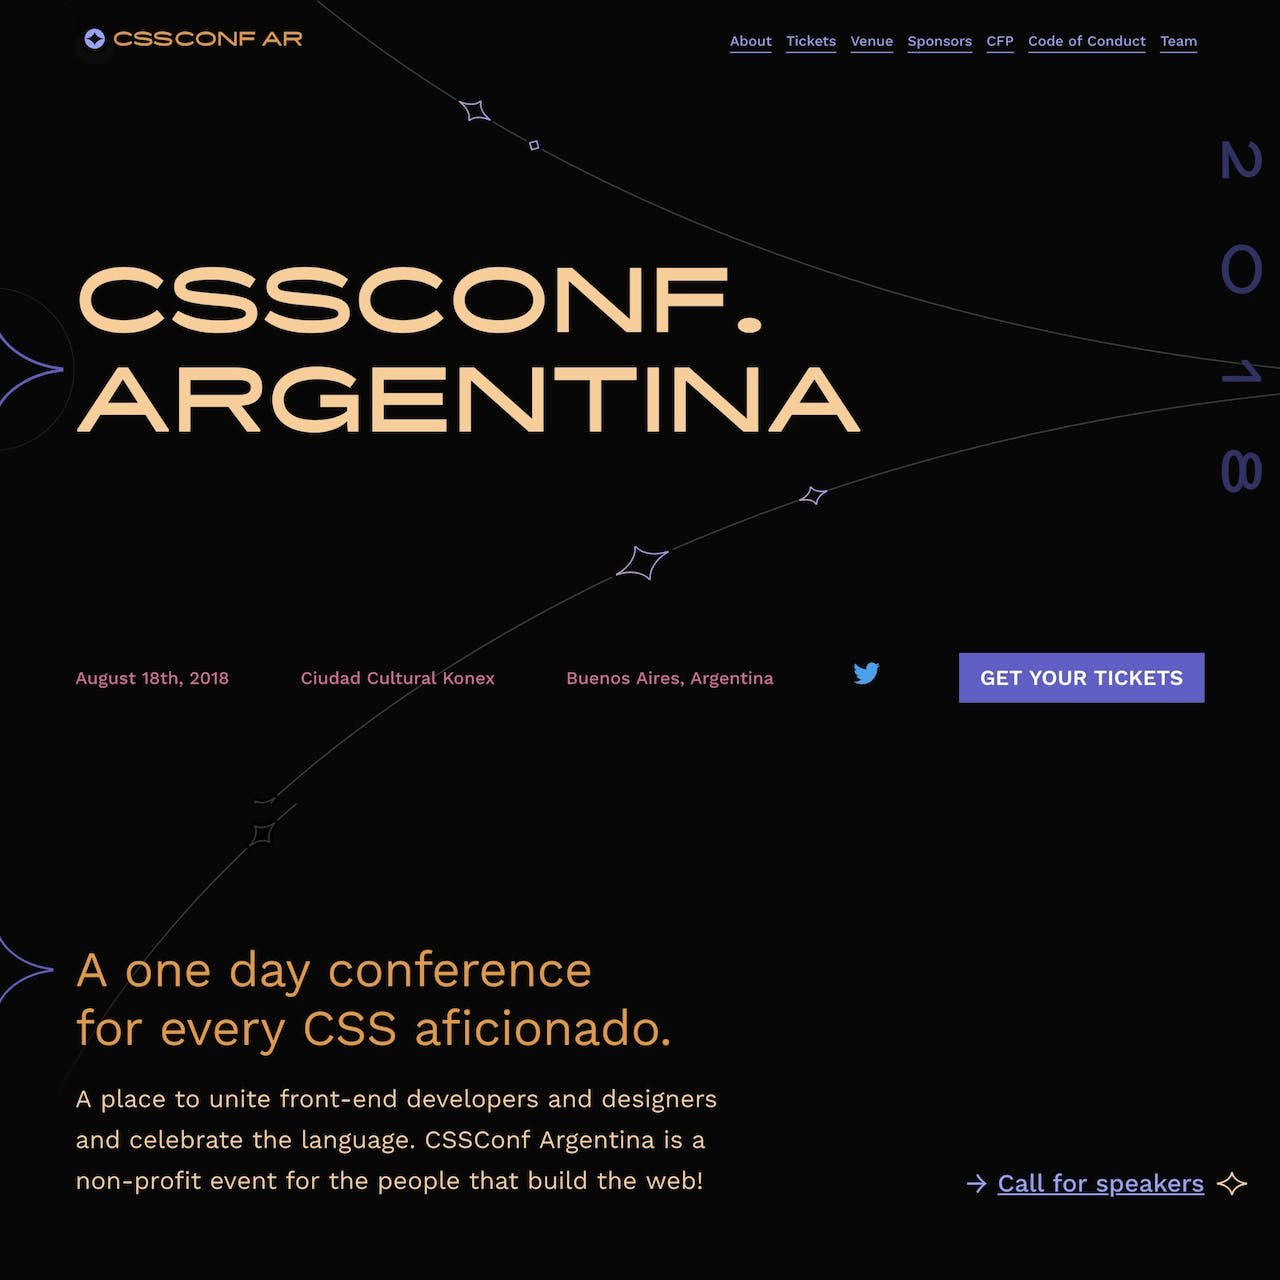 CSSConf Argentina 2018 Website Screenshot